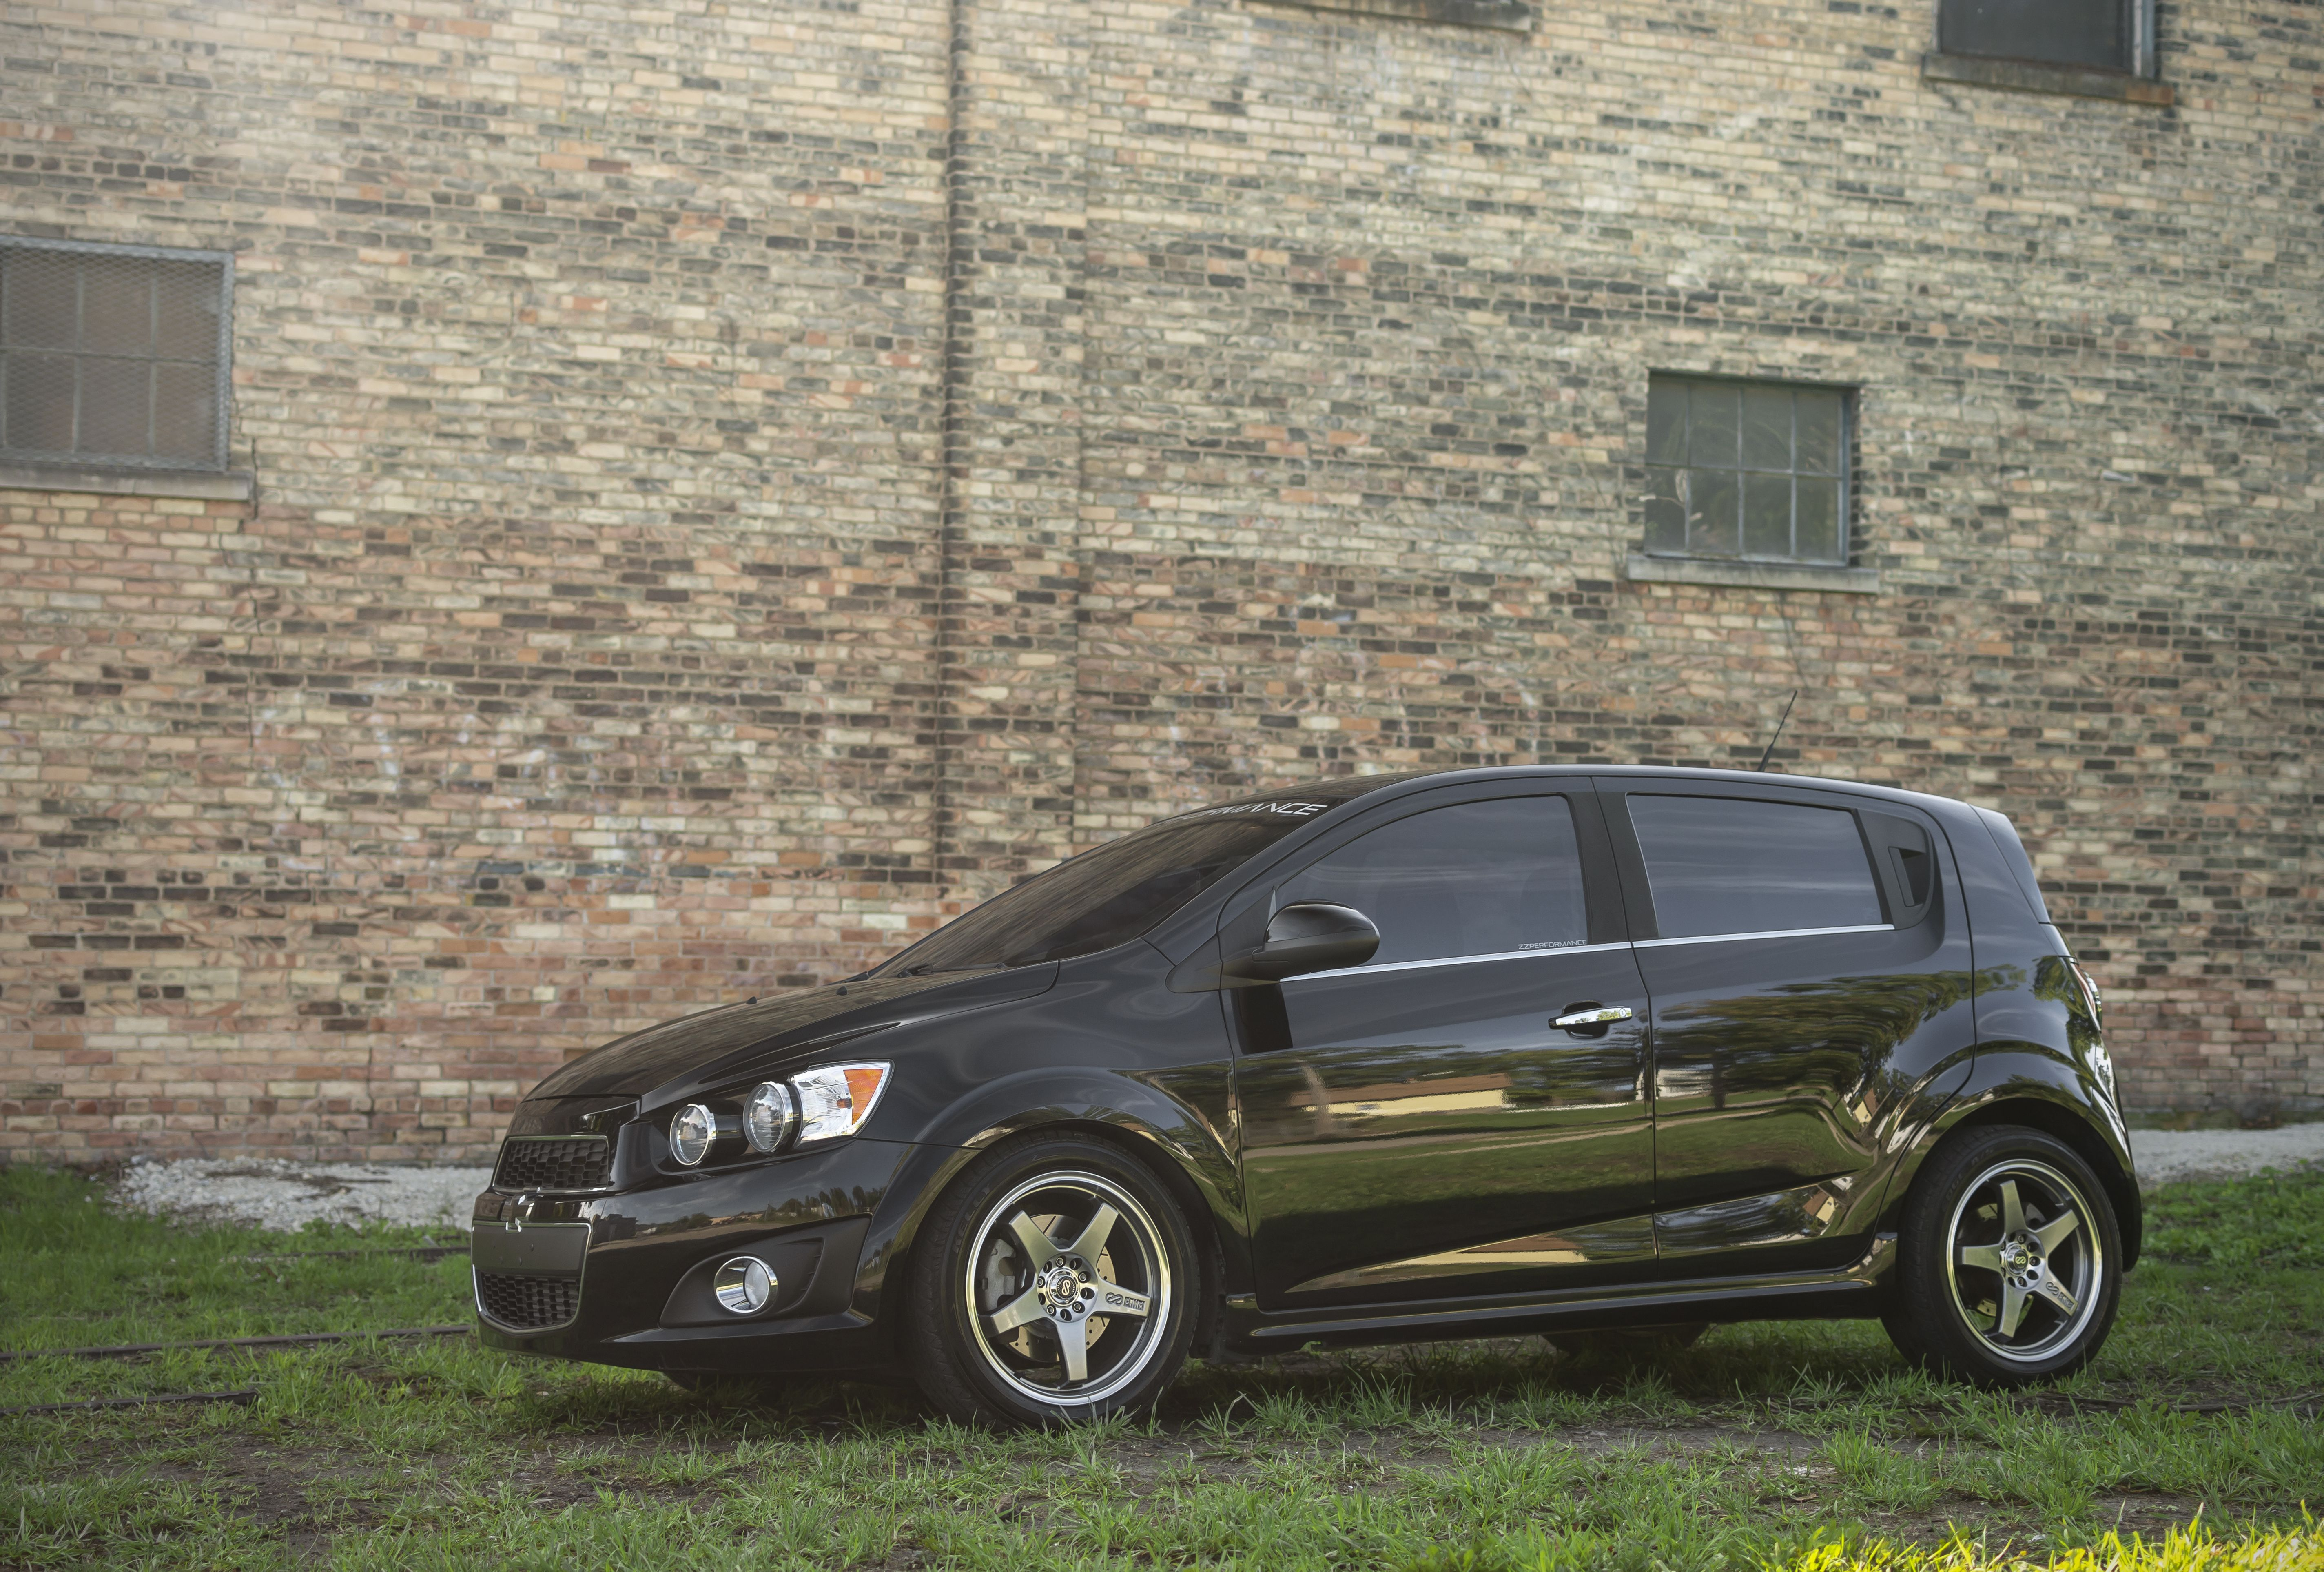 2012 Chevy Sonic Turbo Built By Zzperformance Chevy Sonic